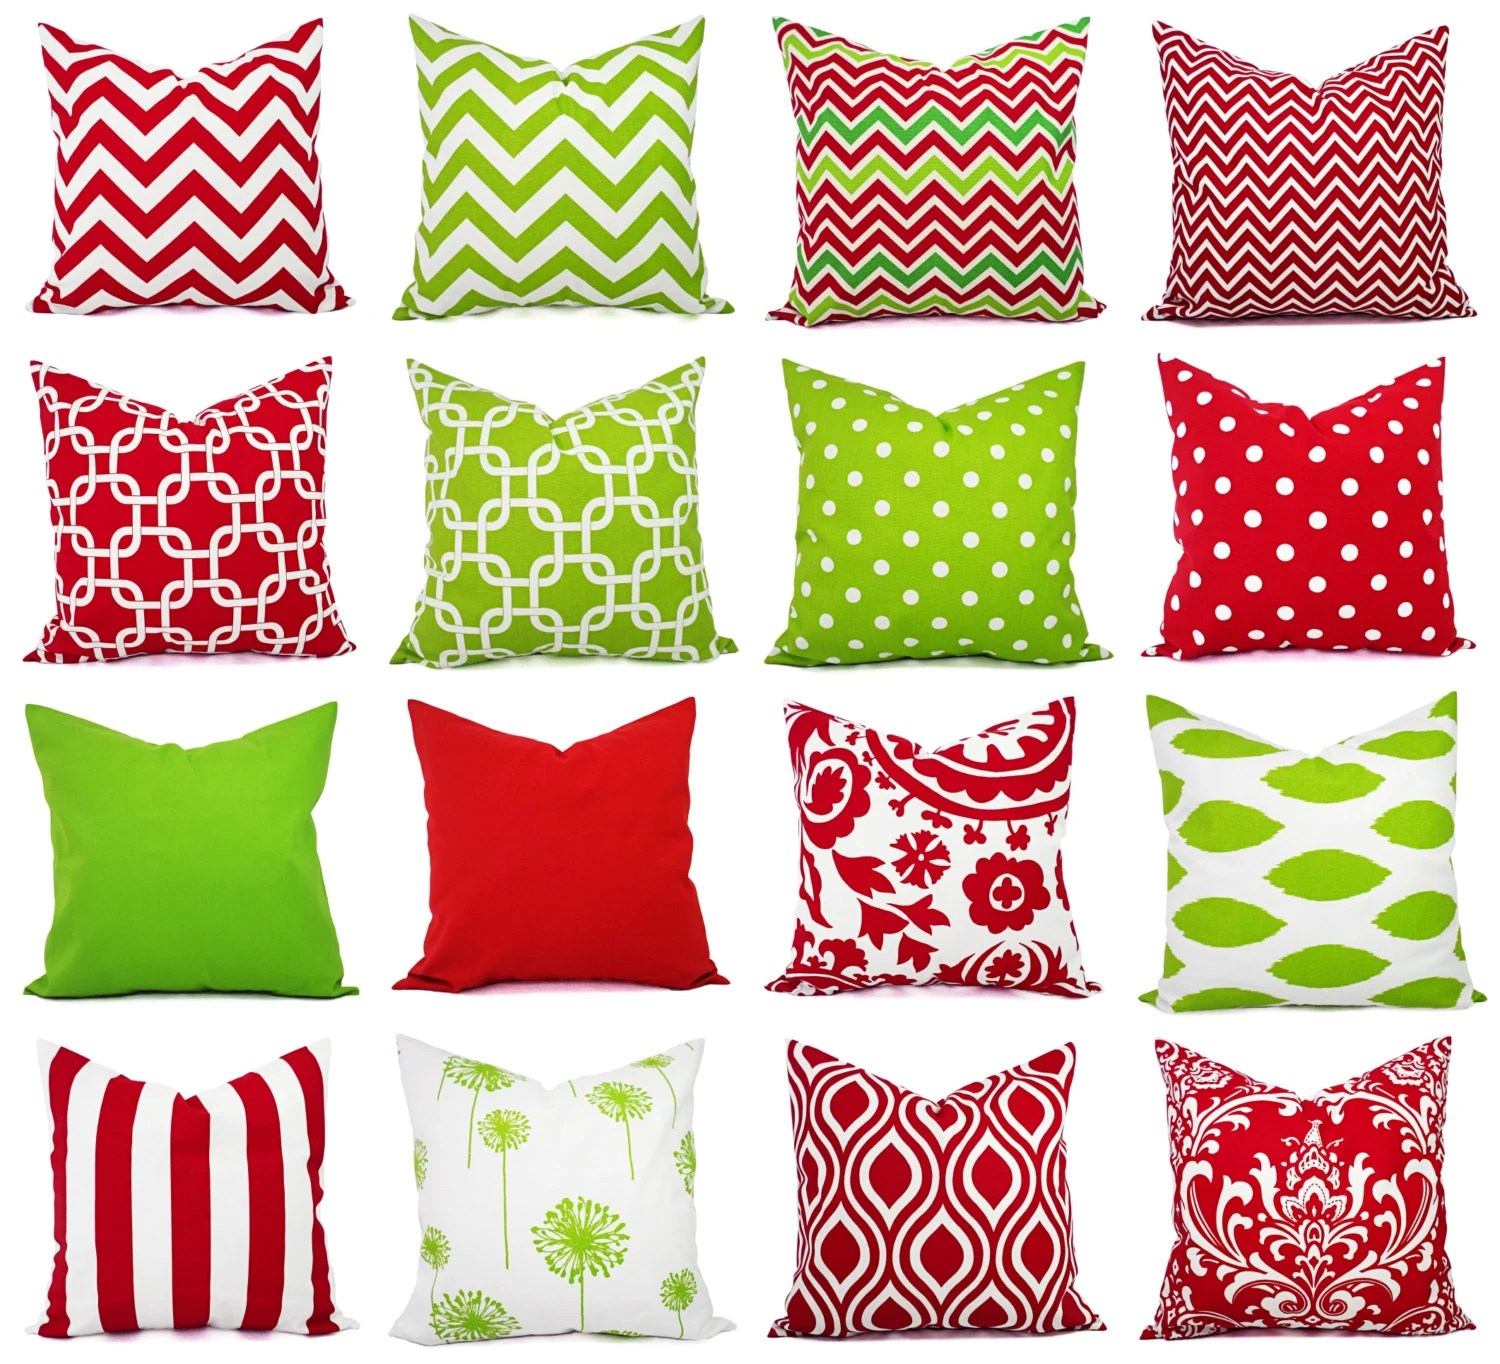 Cushion Covers Christmas Holiday Pillow Covers Christmas Pillows Red And Green